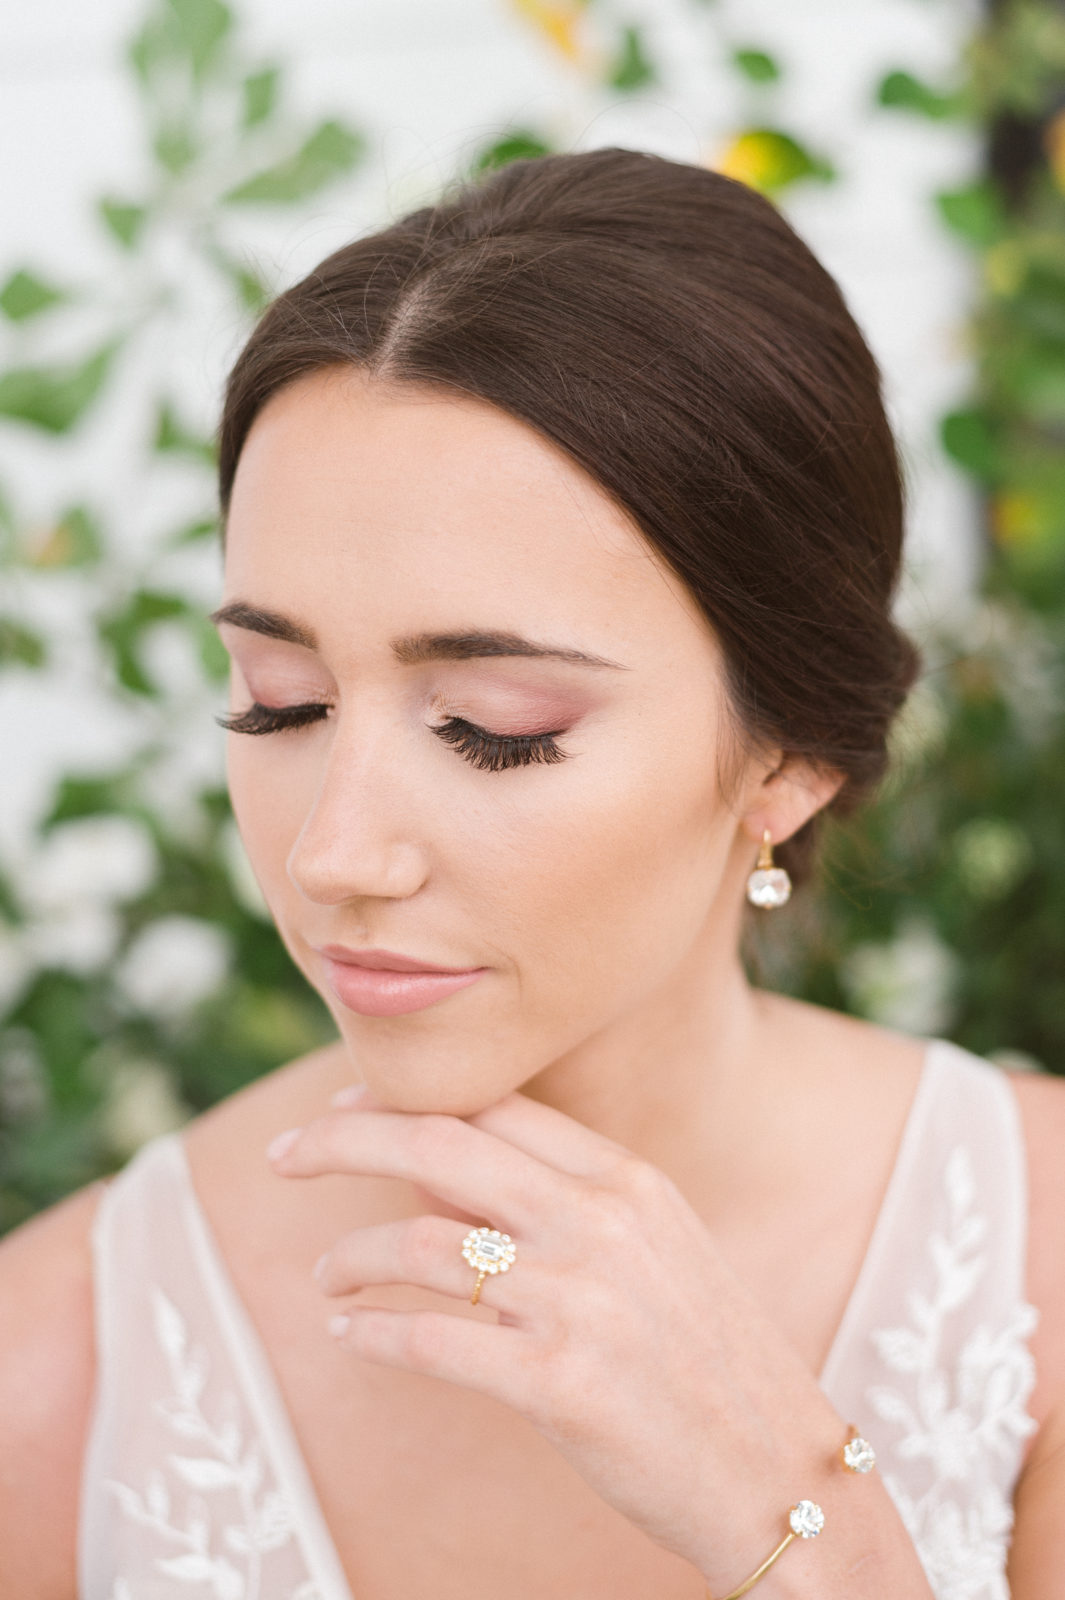 DFW Bridal Makeup: Tousled featured on Alexa Kay Events